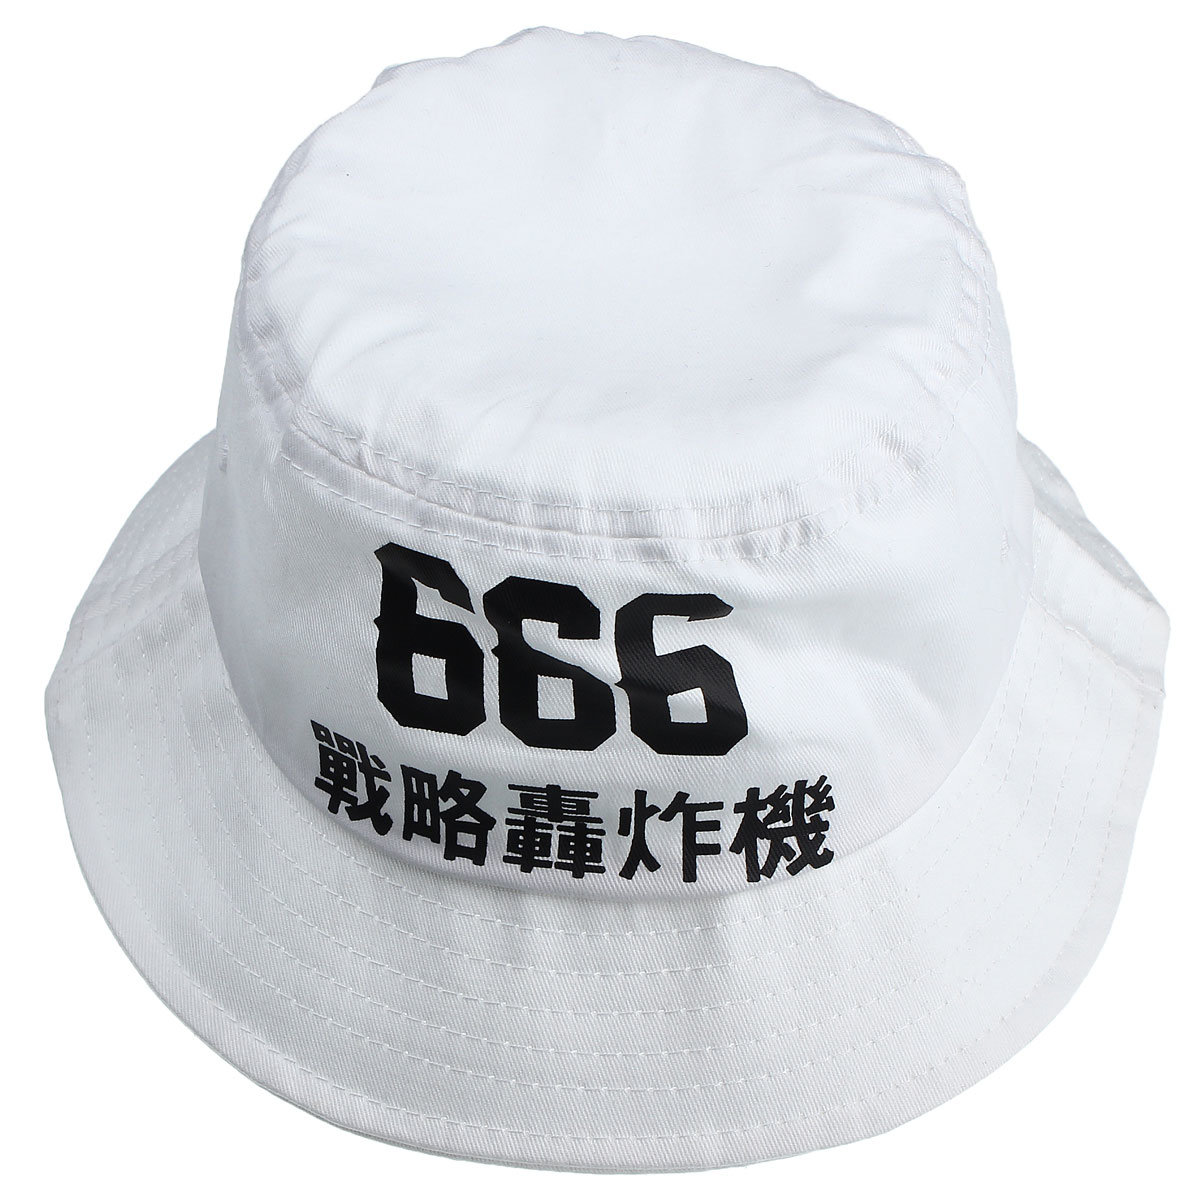 56884f78 666 Embroidery Fisherman Cap White Cotton Bucket Fishing Boonie Hat